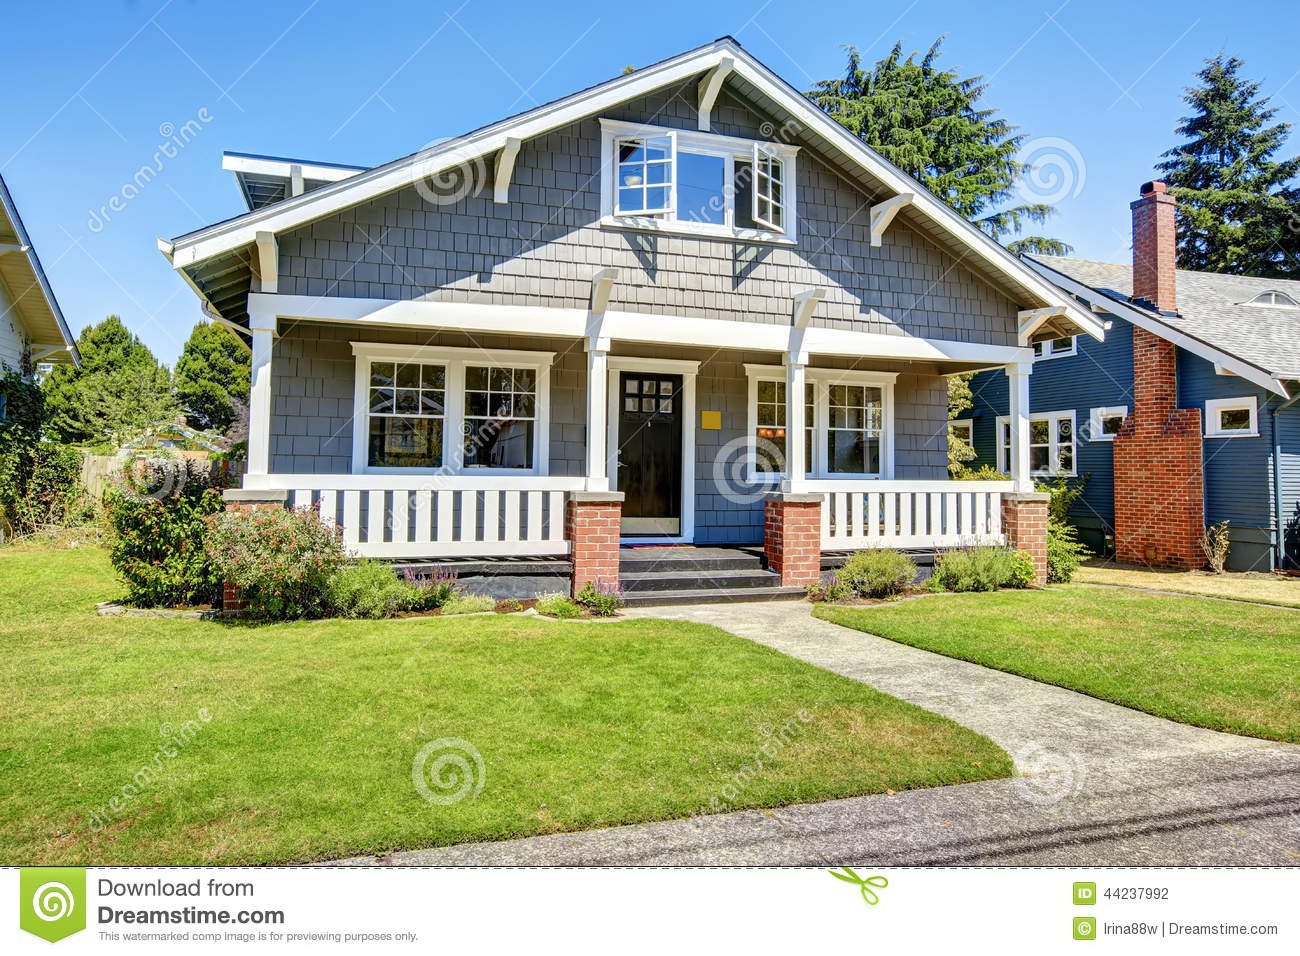 Clapboard Siding House Exterior Large Entance Porch With Brick Stock Photo Image 44237992